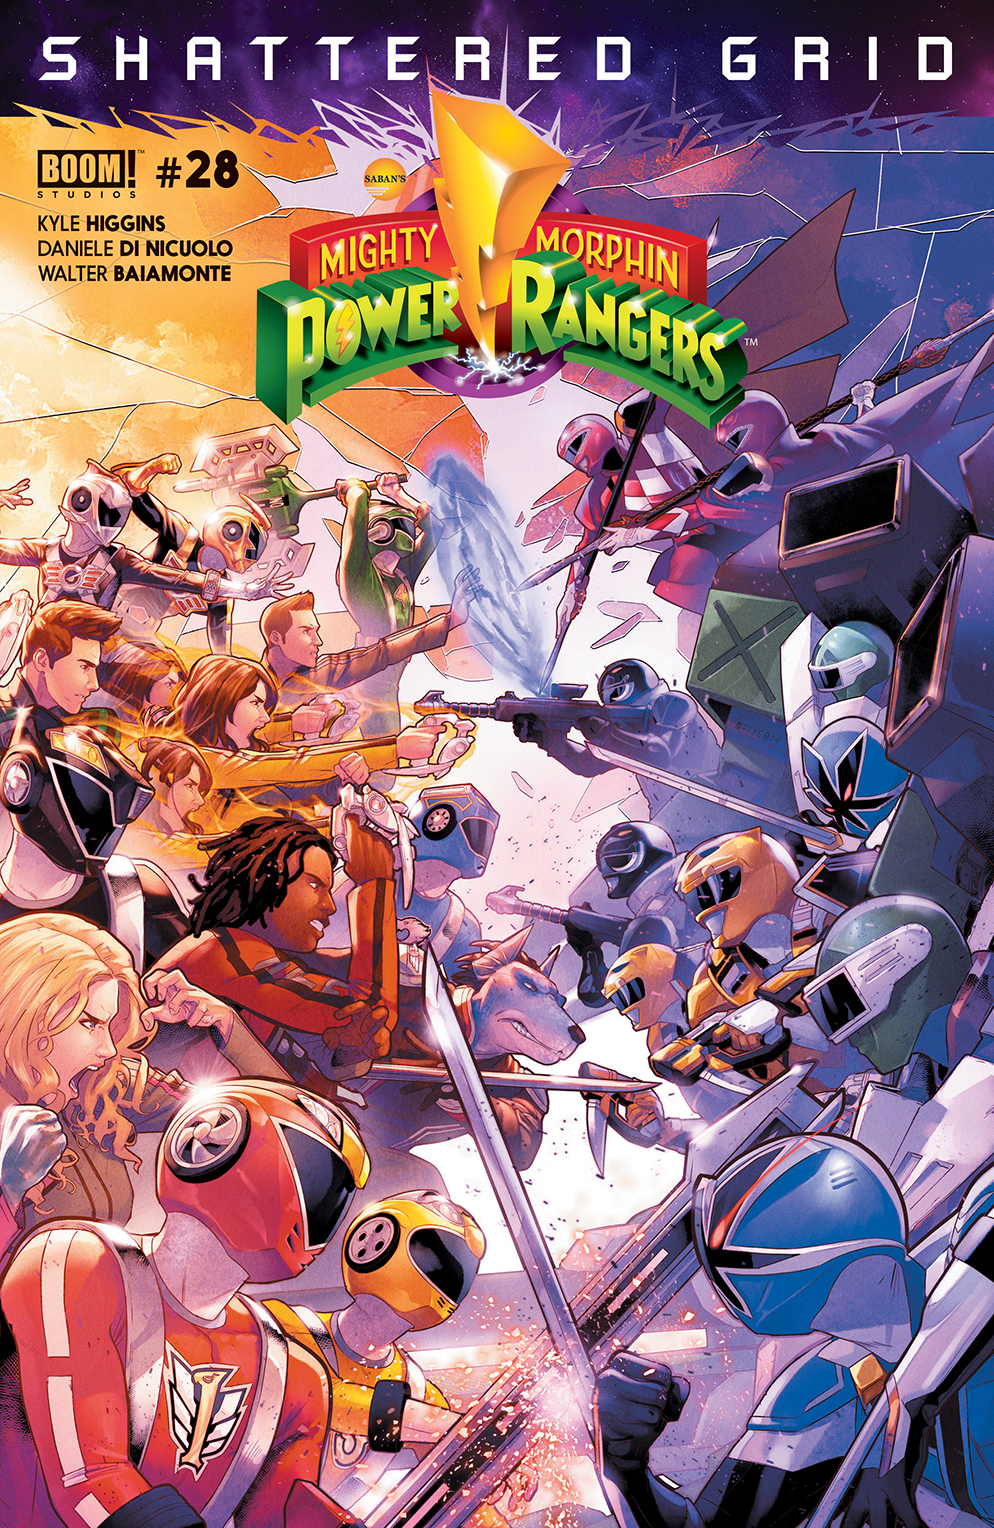 MIGHTY MORPHIN POWER RANGERS #28 MAIN SG